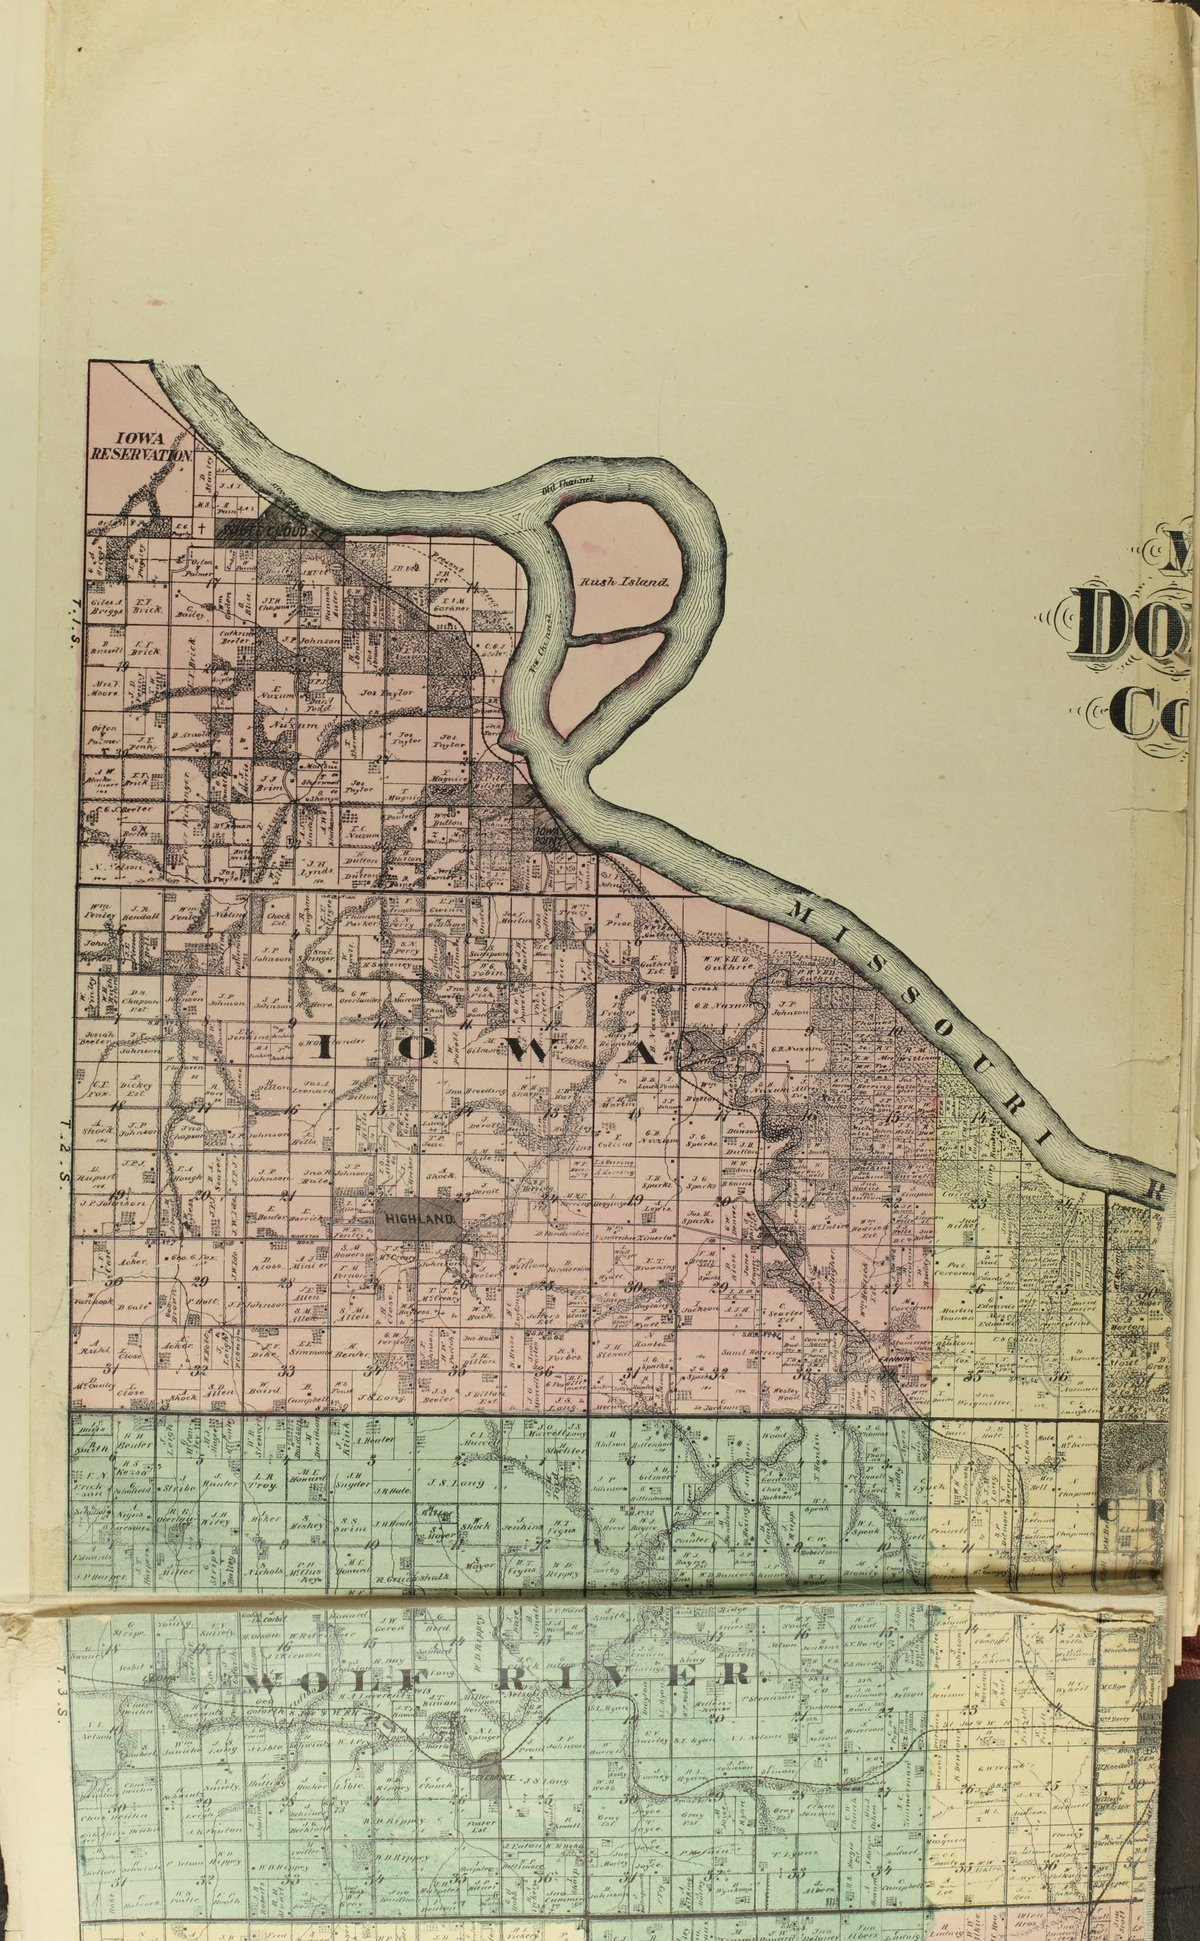 Historical plat book of Doniphan County, Kansas - Map of Doniphan co (a)